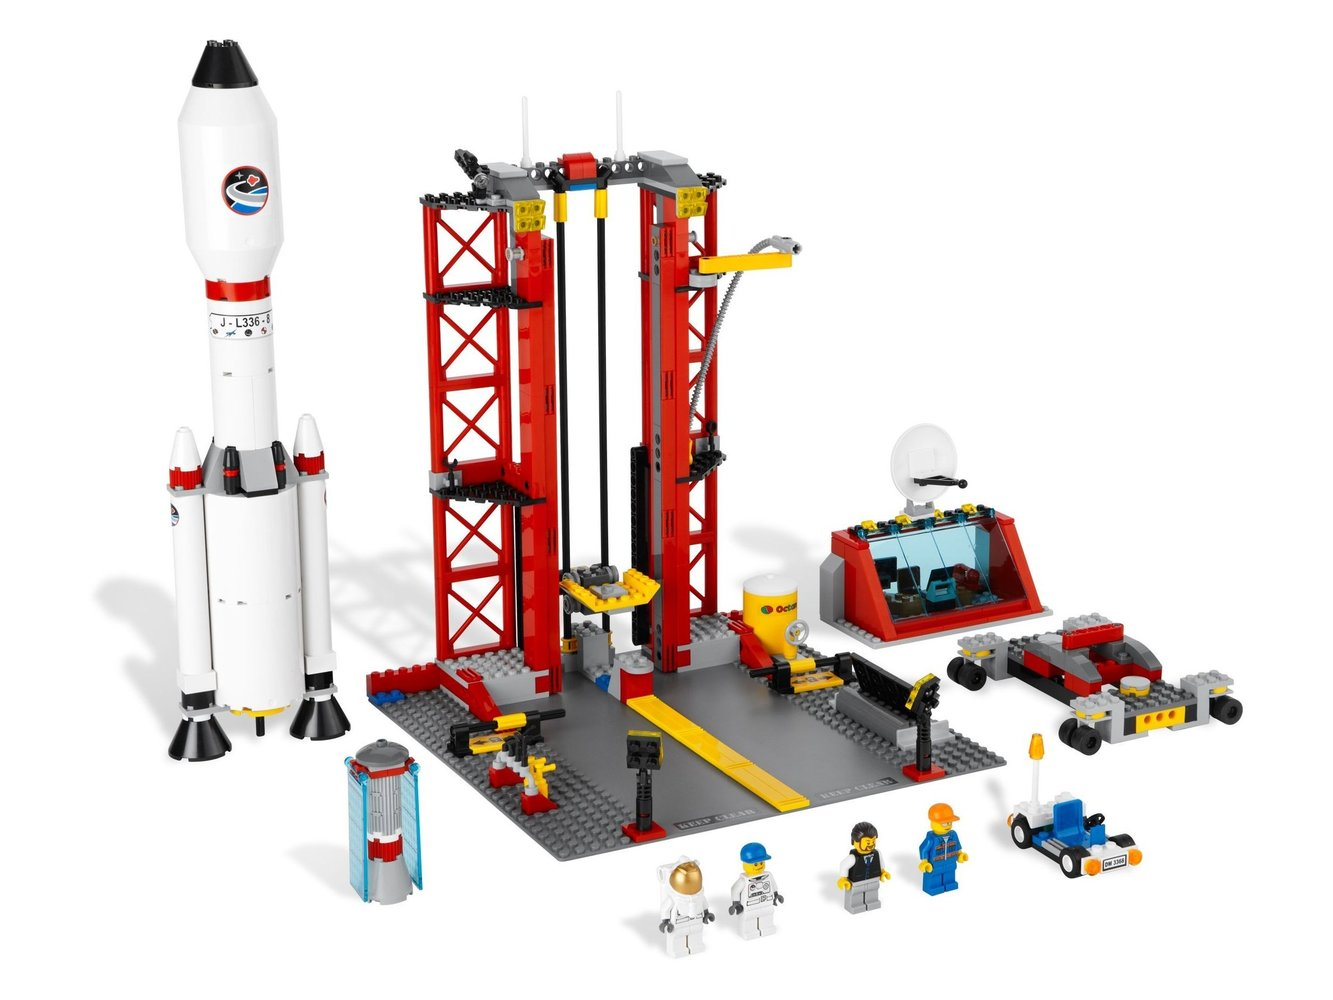 Rocket Launch Center